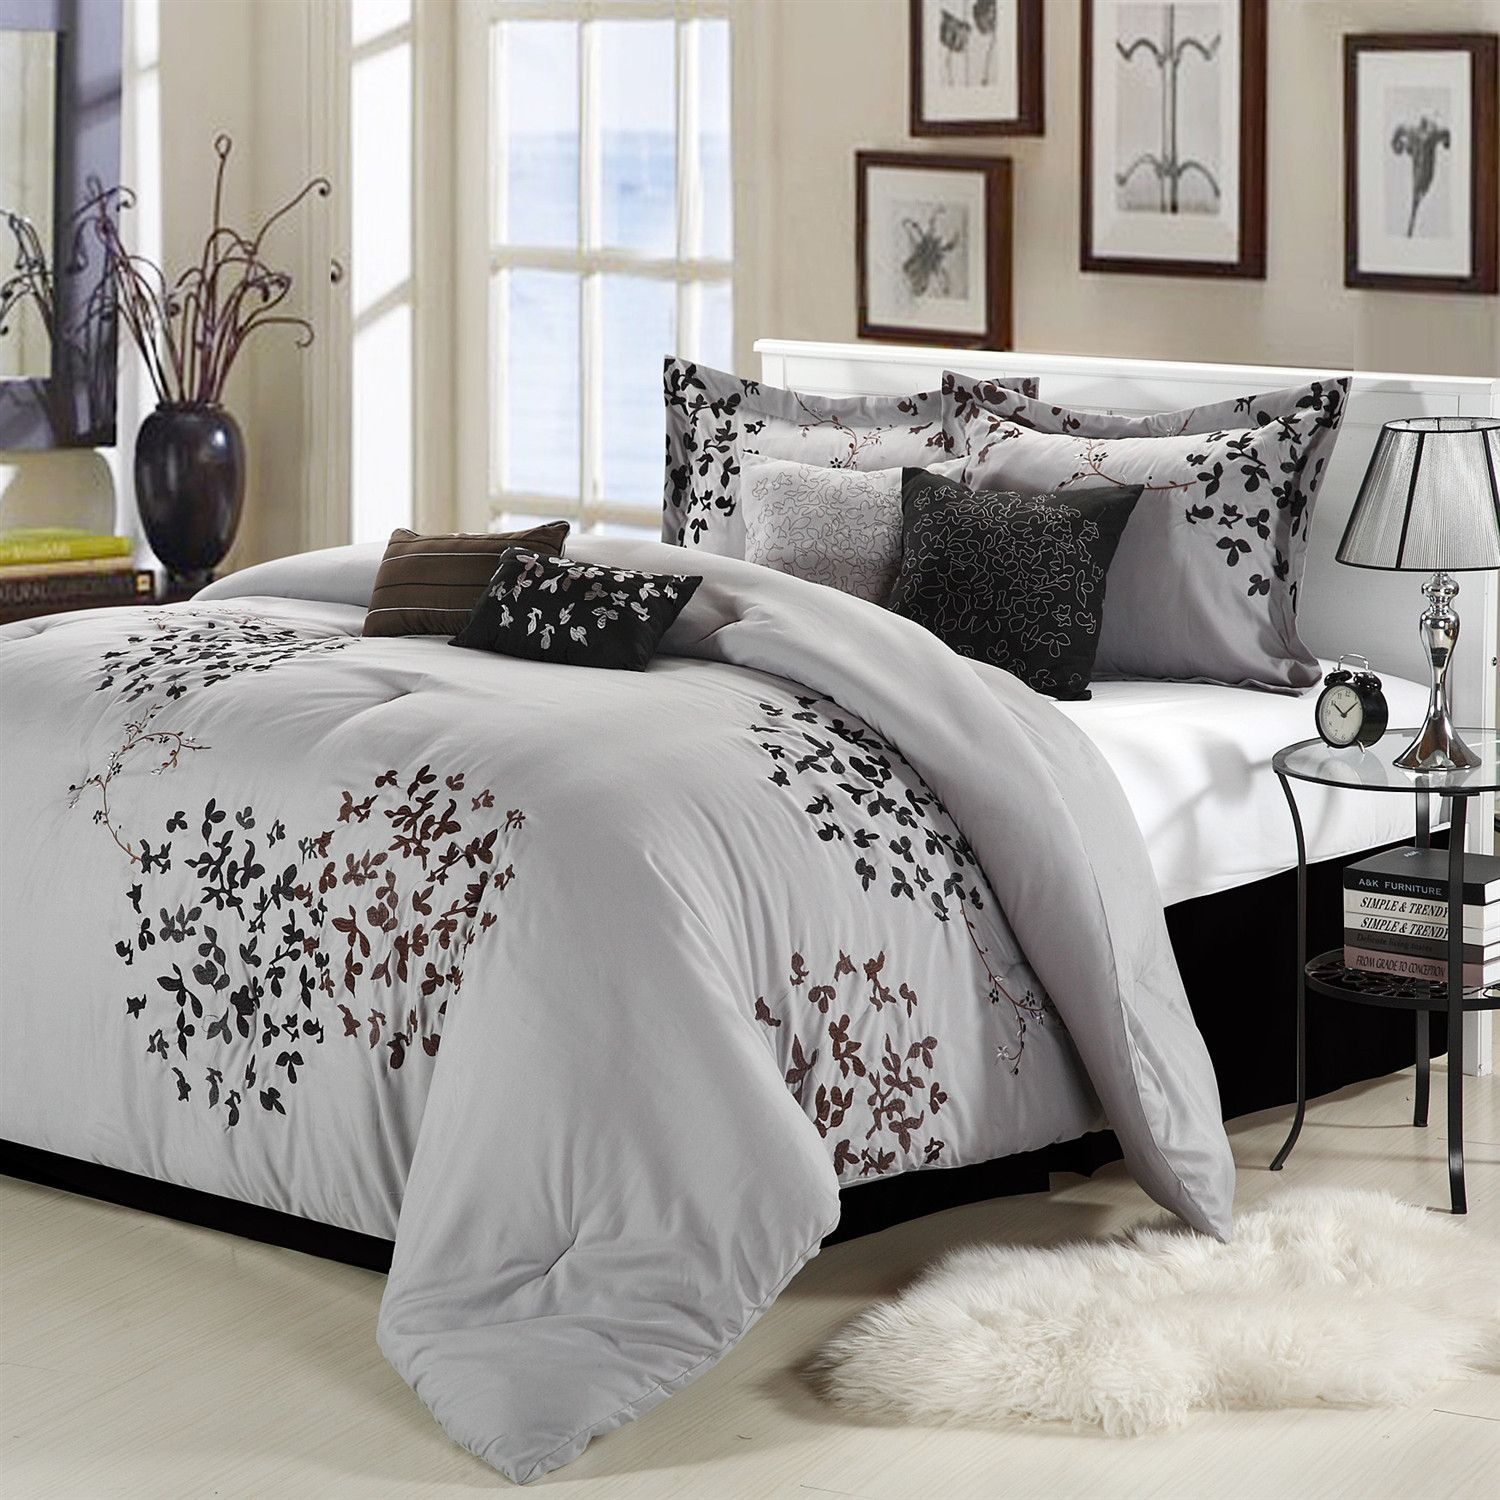 linens pc gray bedrooms products bed king brenna black set comforter